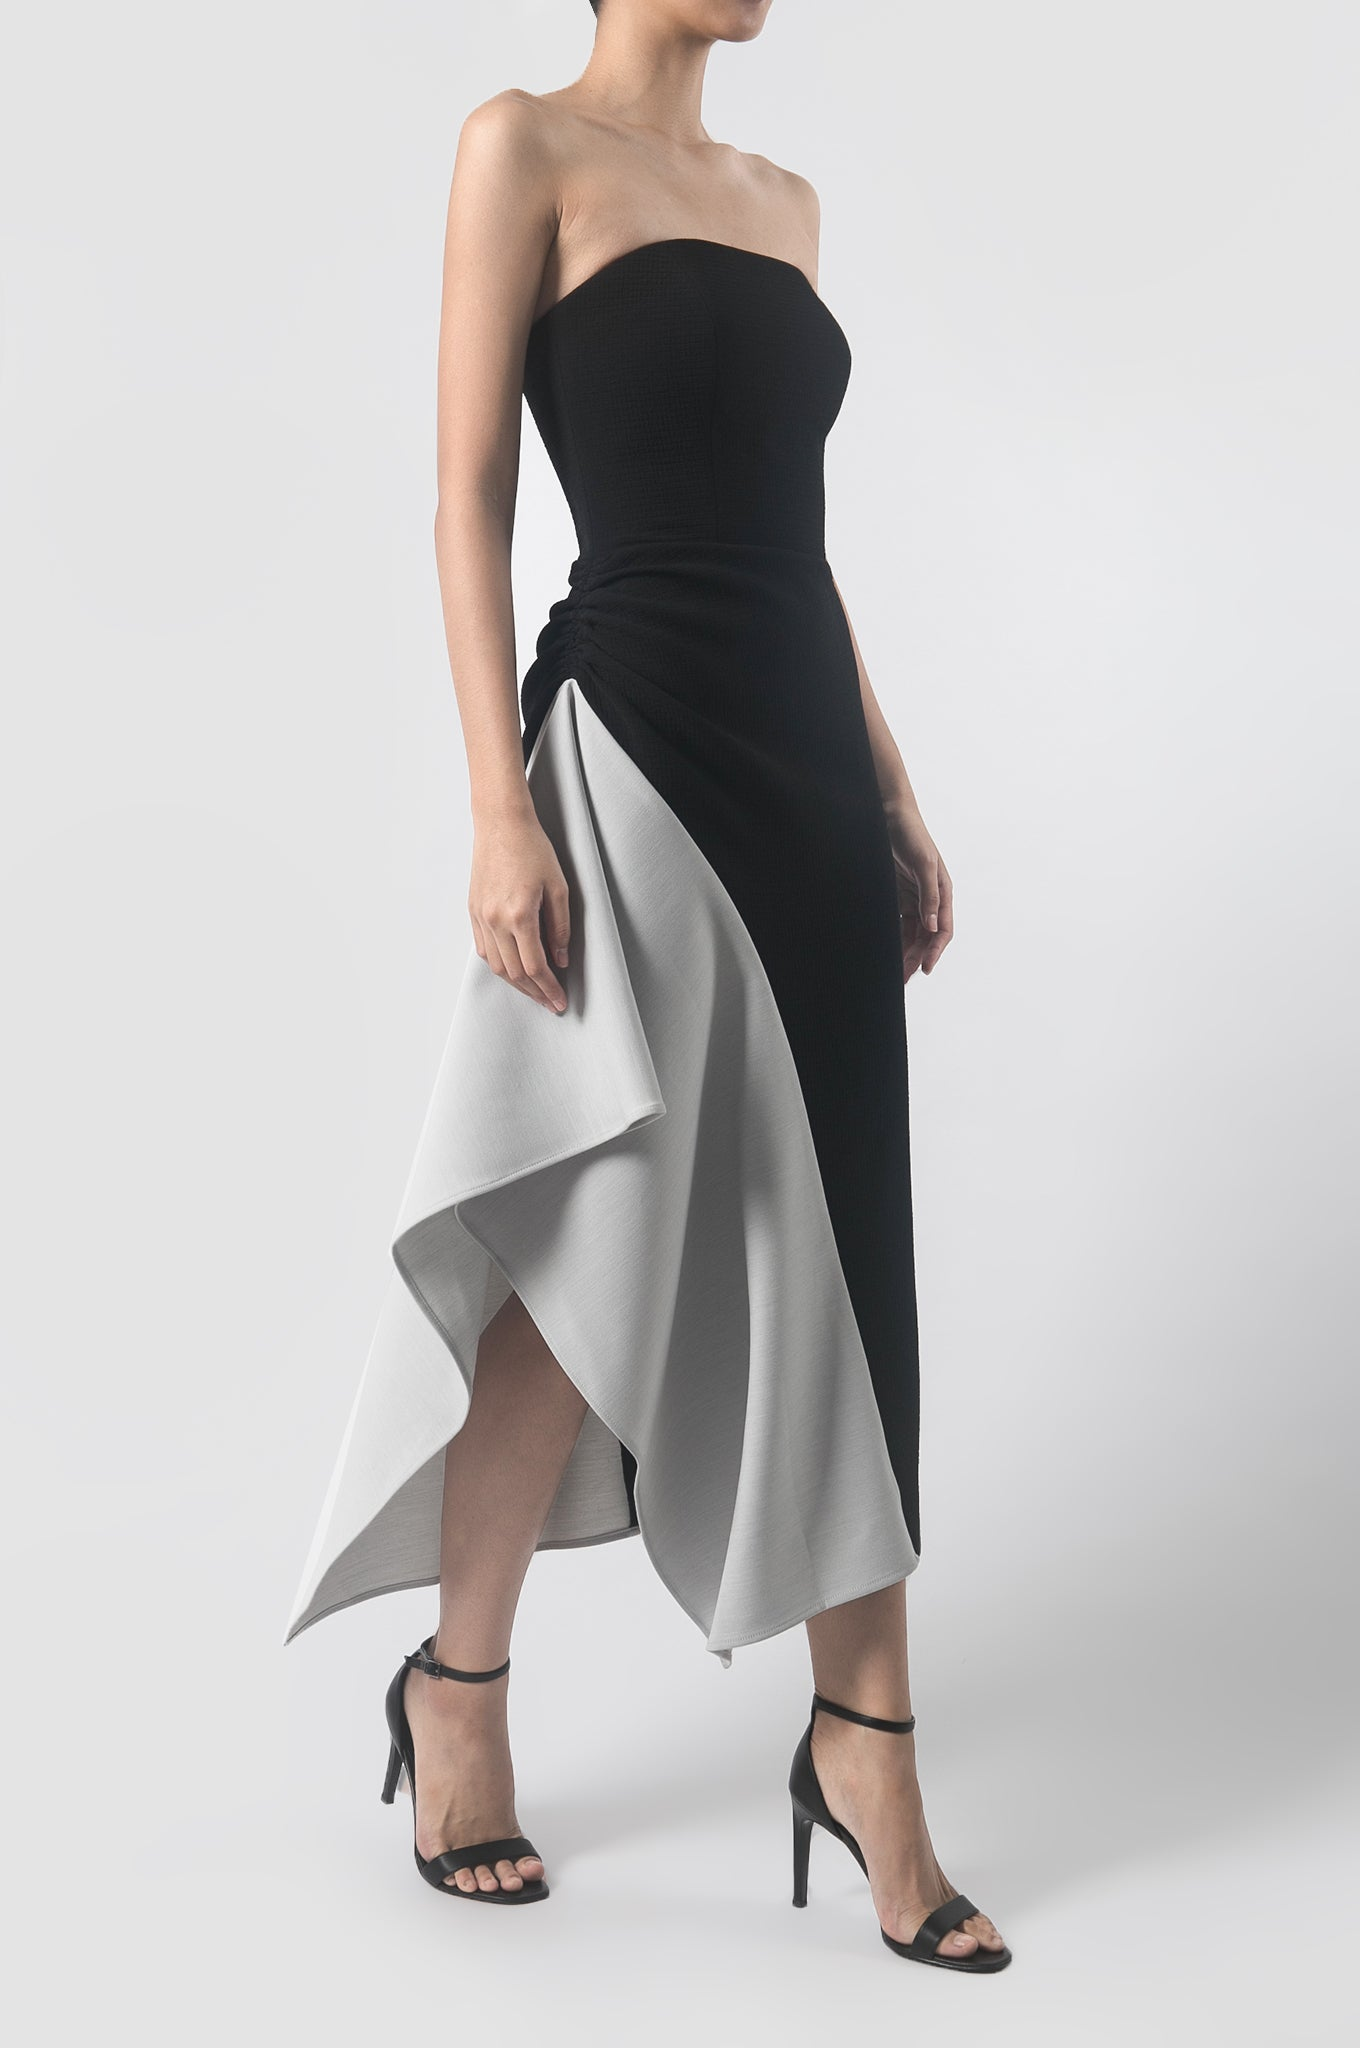 Black/Grey Extinction Dress